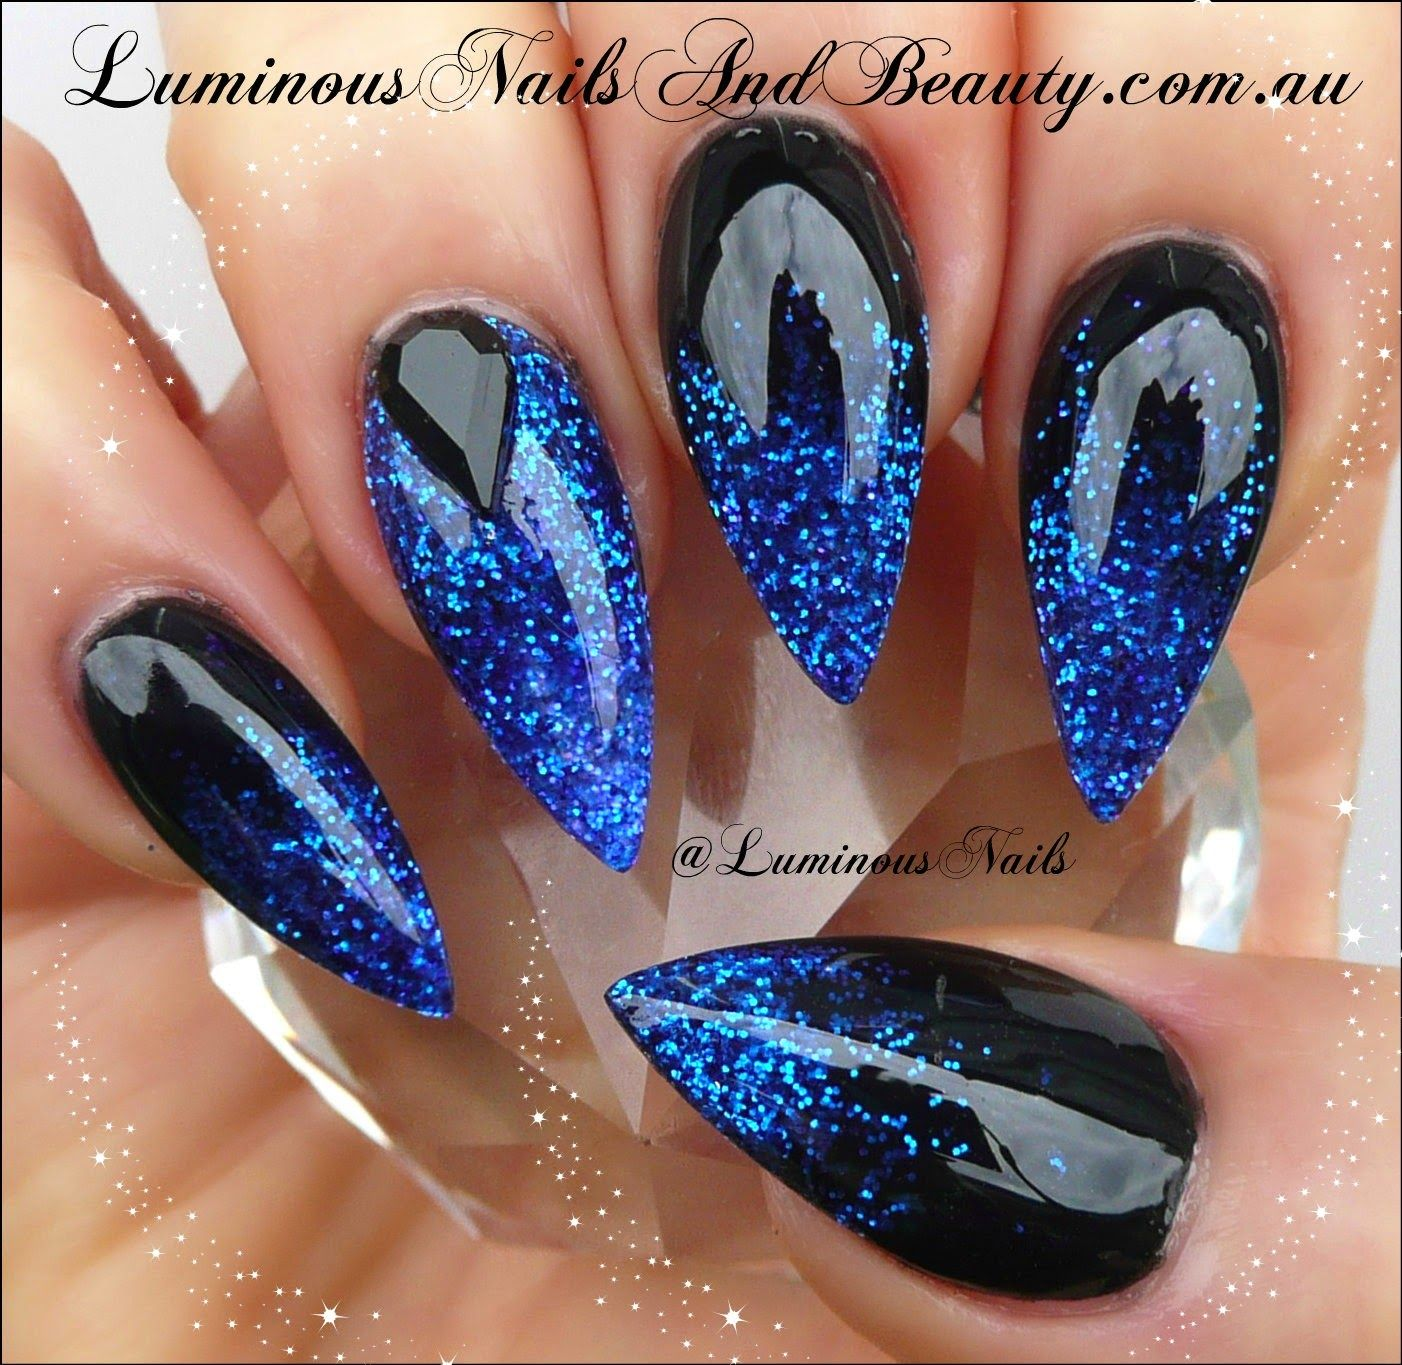 Luminous Nails Black with Electric Blue Nails